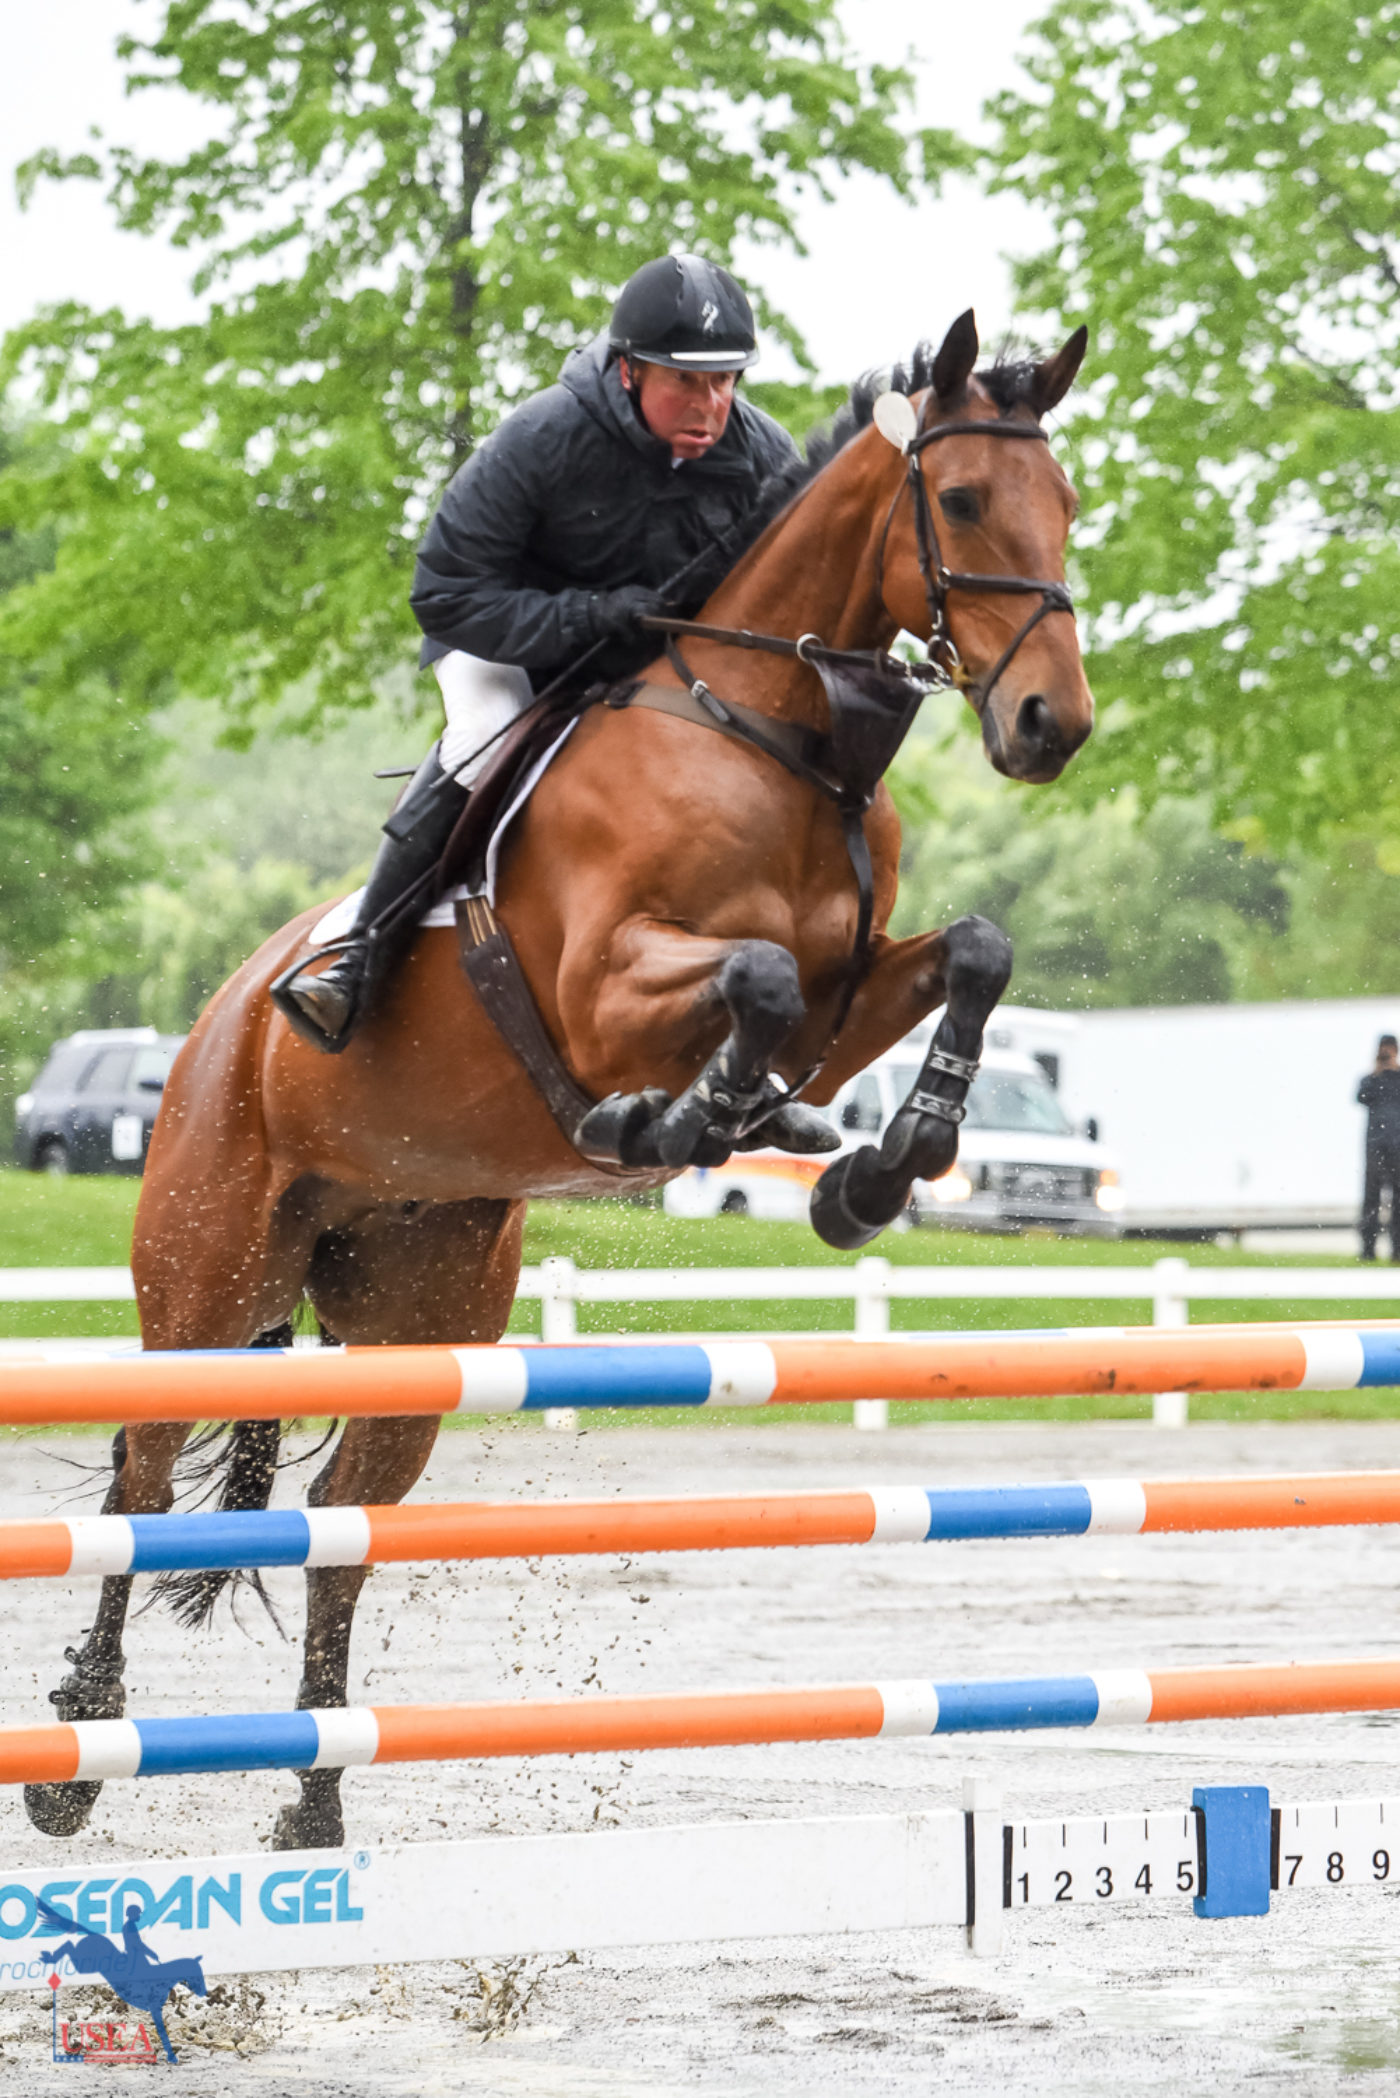 10th - Robin Walker and SBT Barolo - 39.5